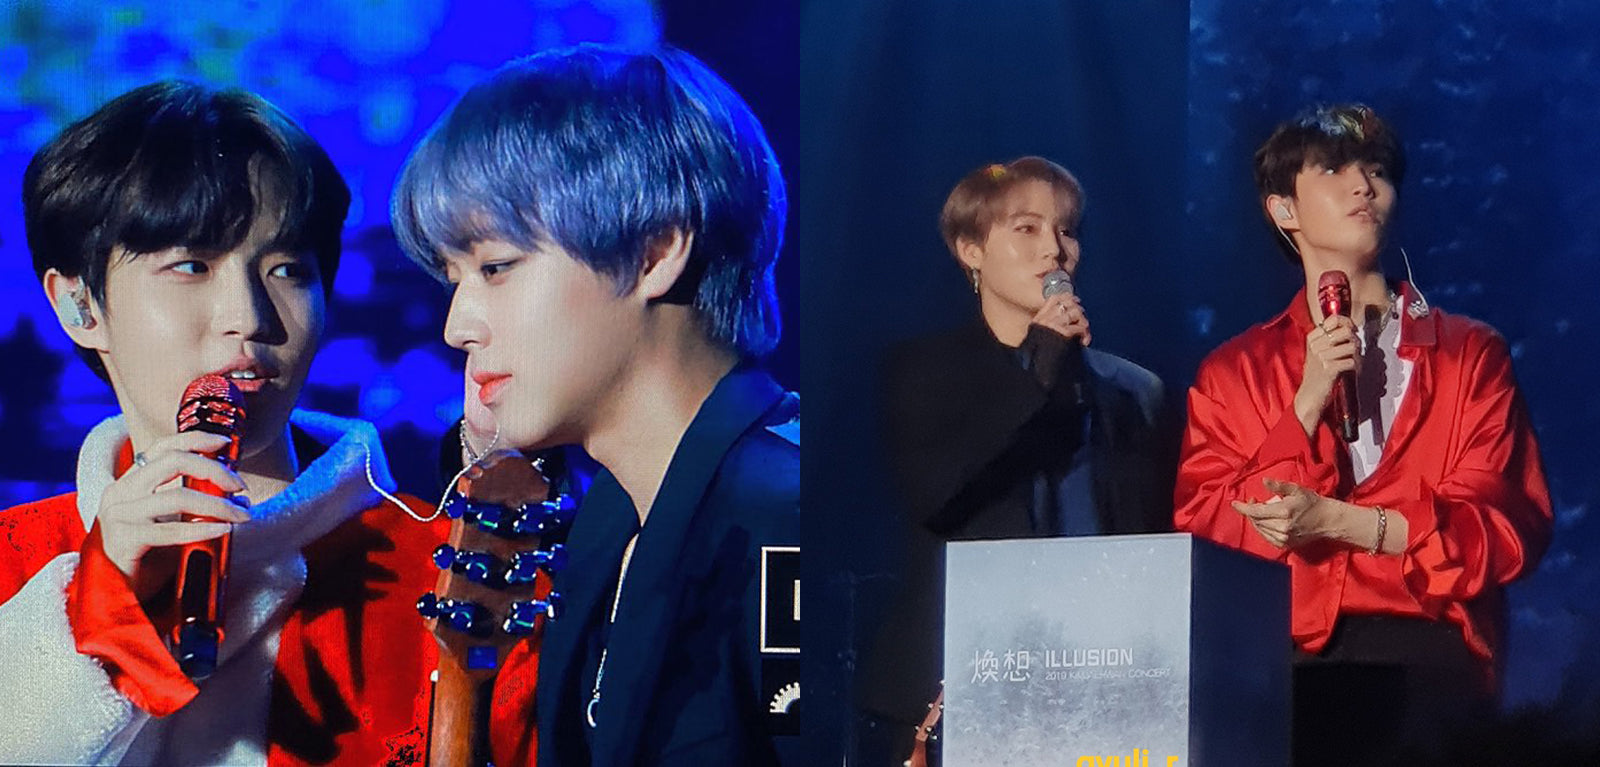 Wanna One: PARK JIHOON and HA SUNG WOON went on stage with KIM JAE HWAN during his first solo concert - Kpopshop